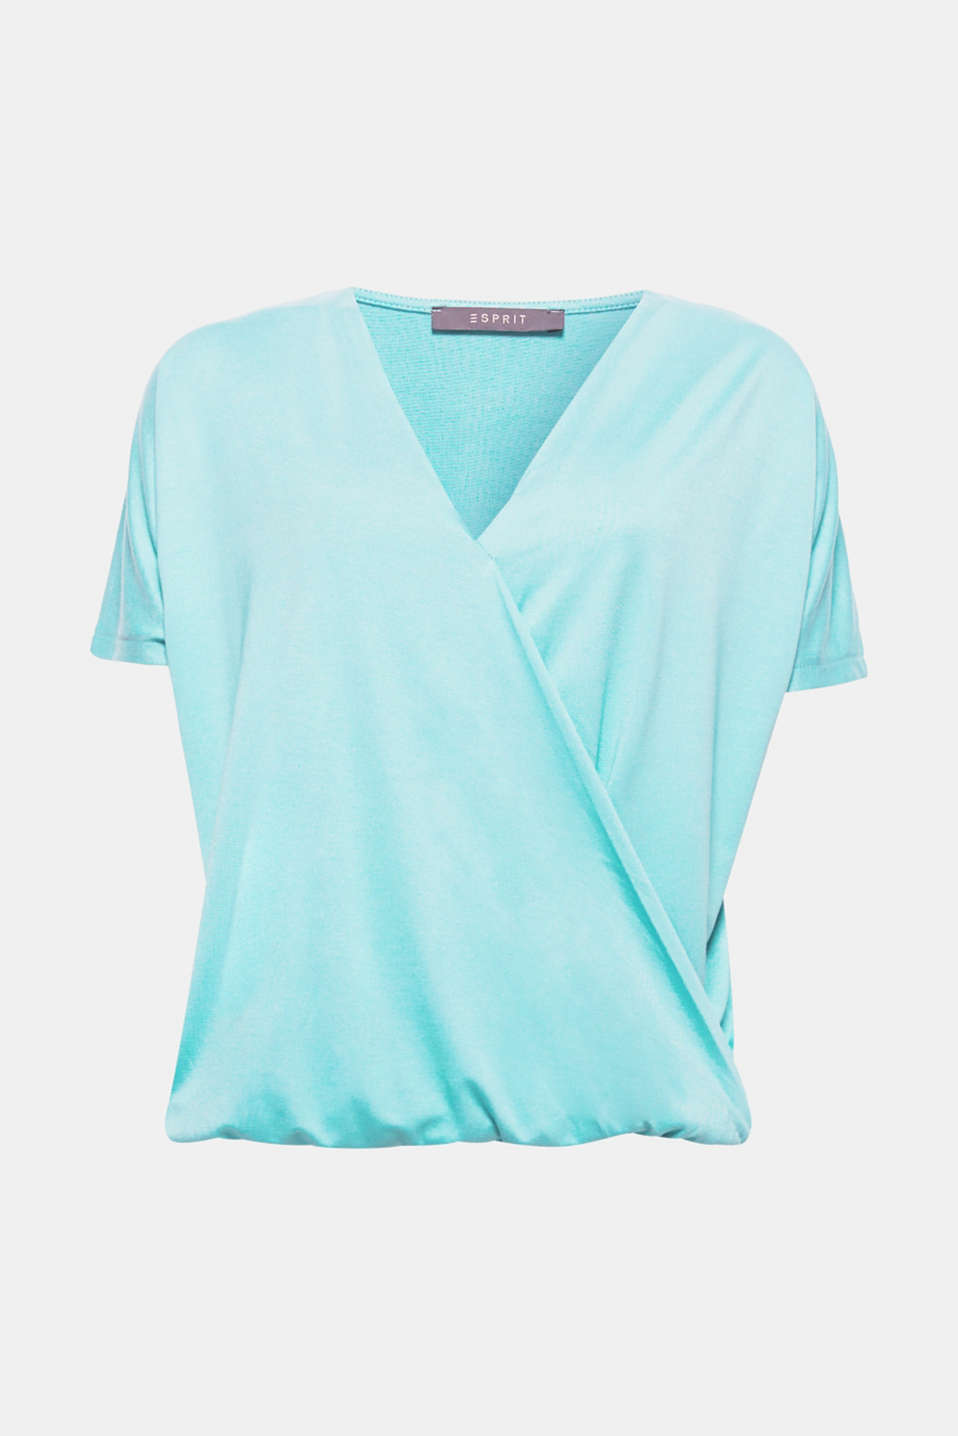 The short batwing sleeves and the fixed wrap-over effect give this softly draped top its modern style!